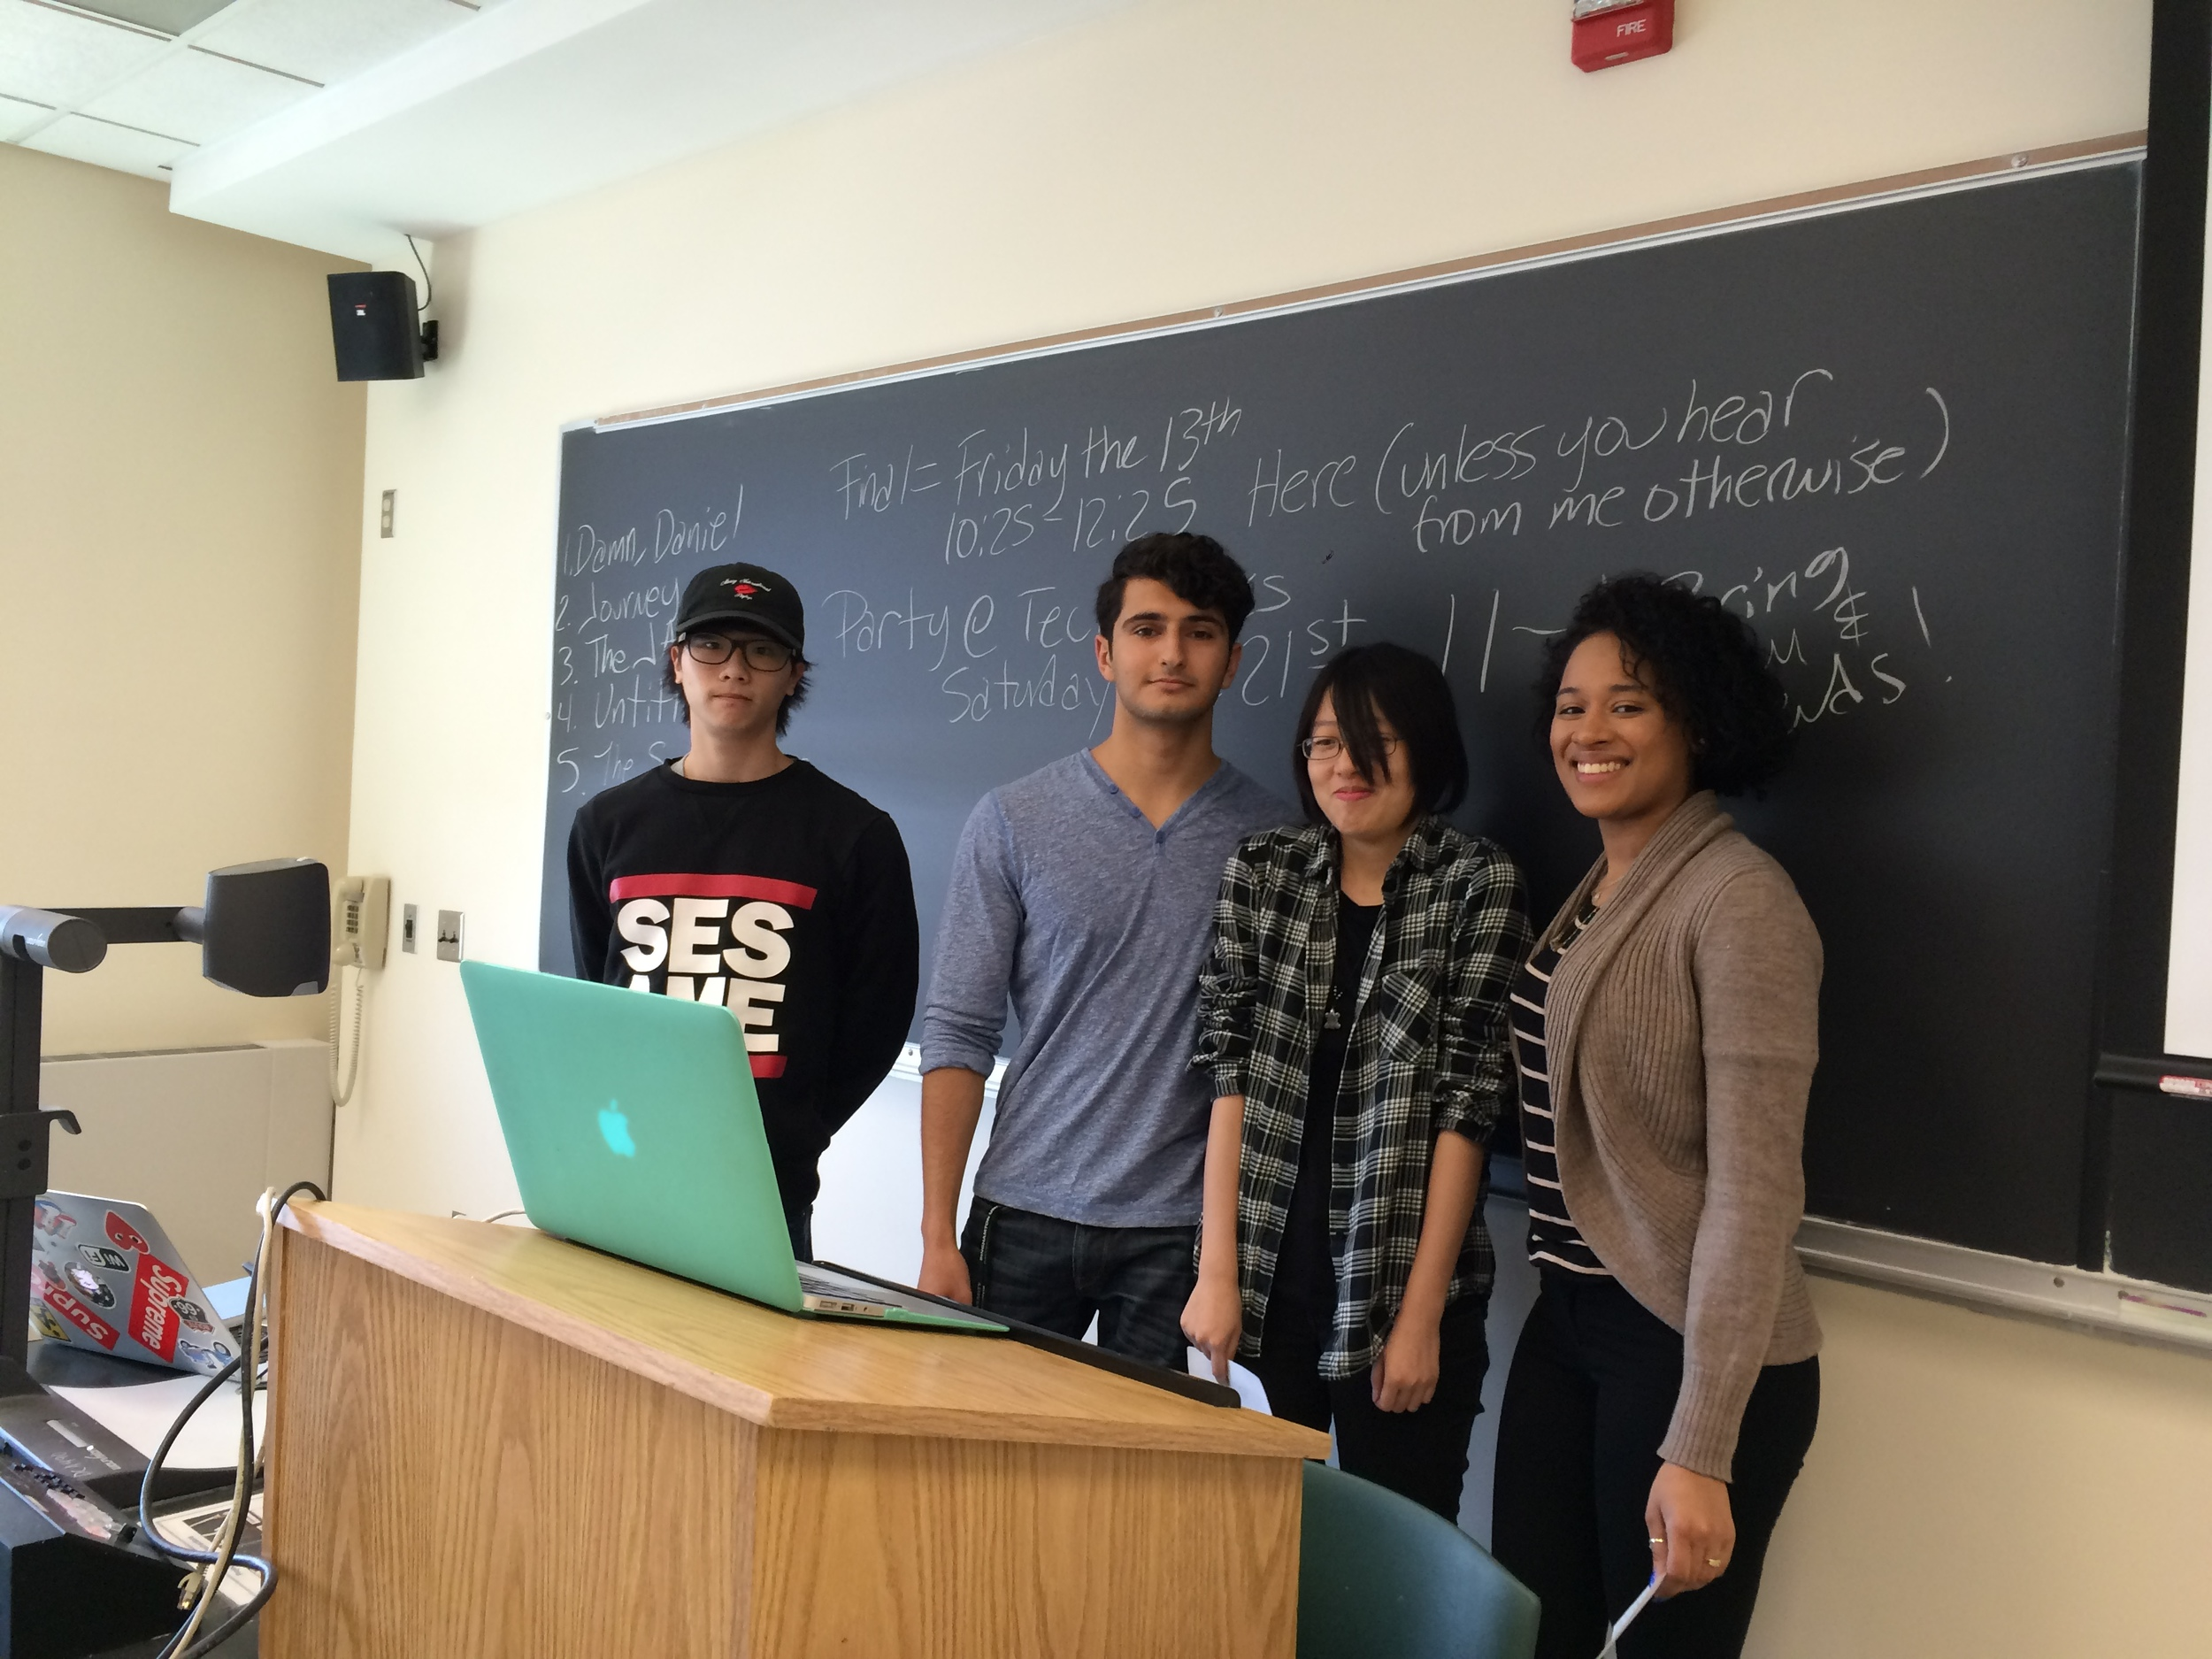 Designers of this Aural Postcard Presenting on their Research (L-R): Lucas You, Samuel Abaev, Kathy He, and Rosemary Espinal